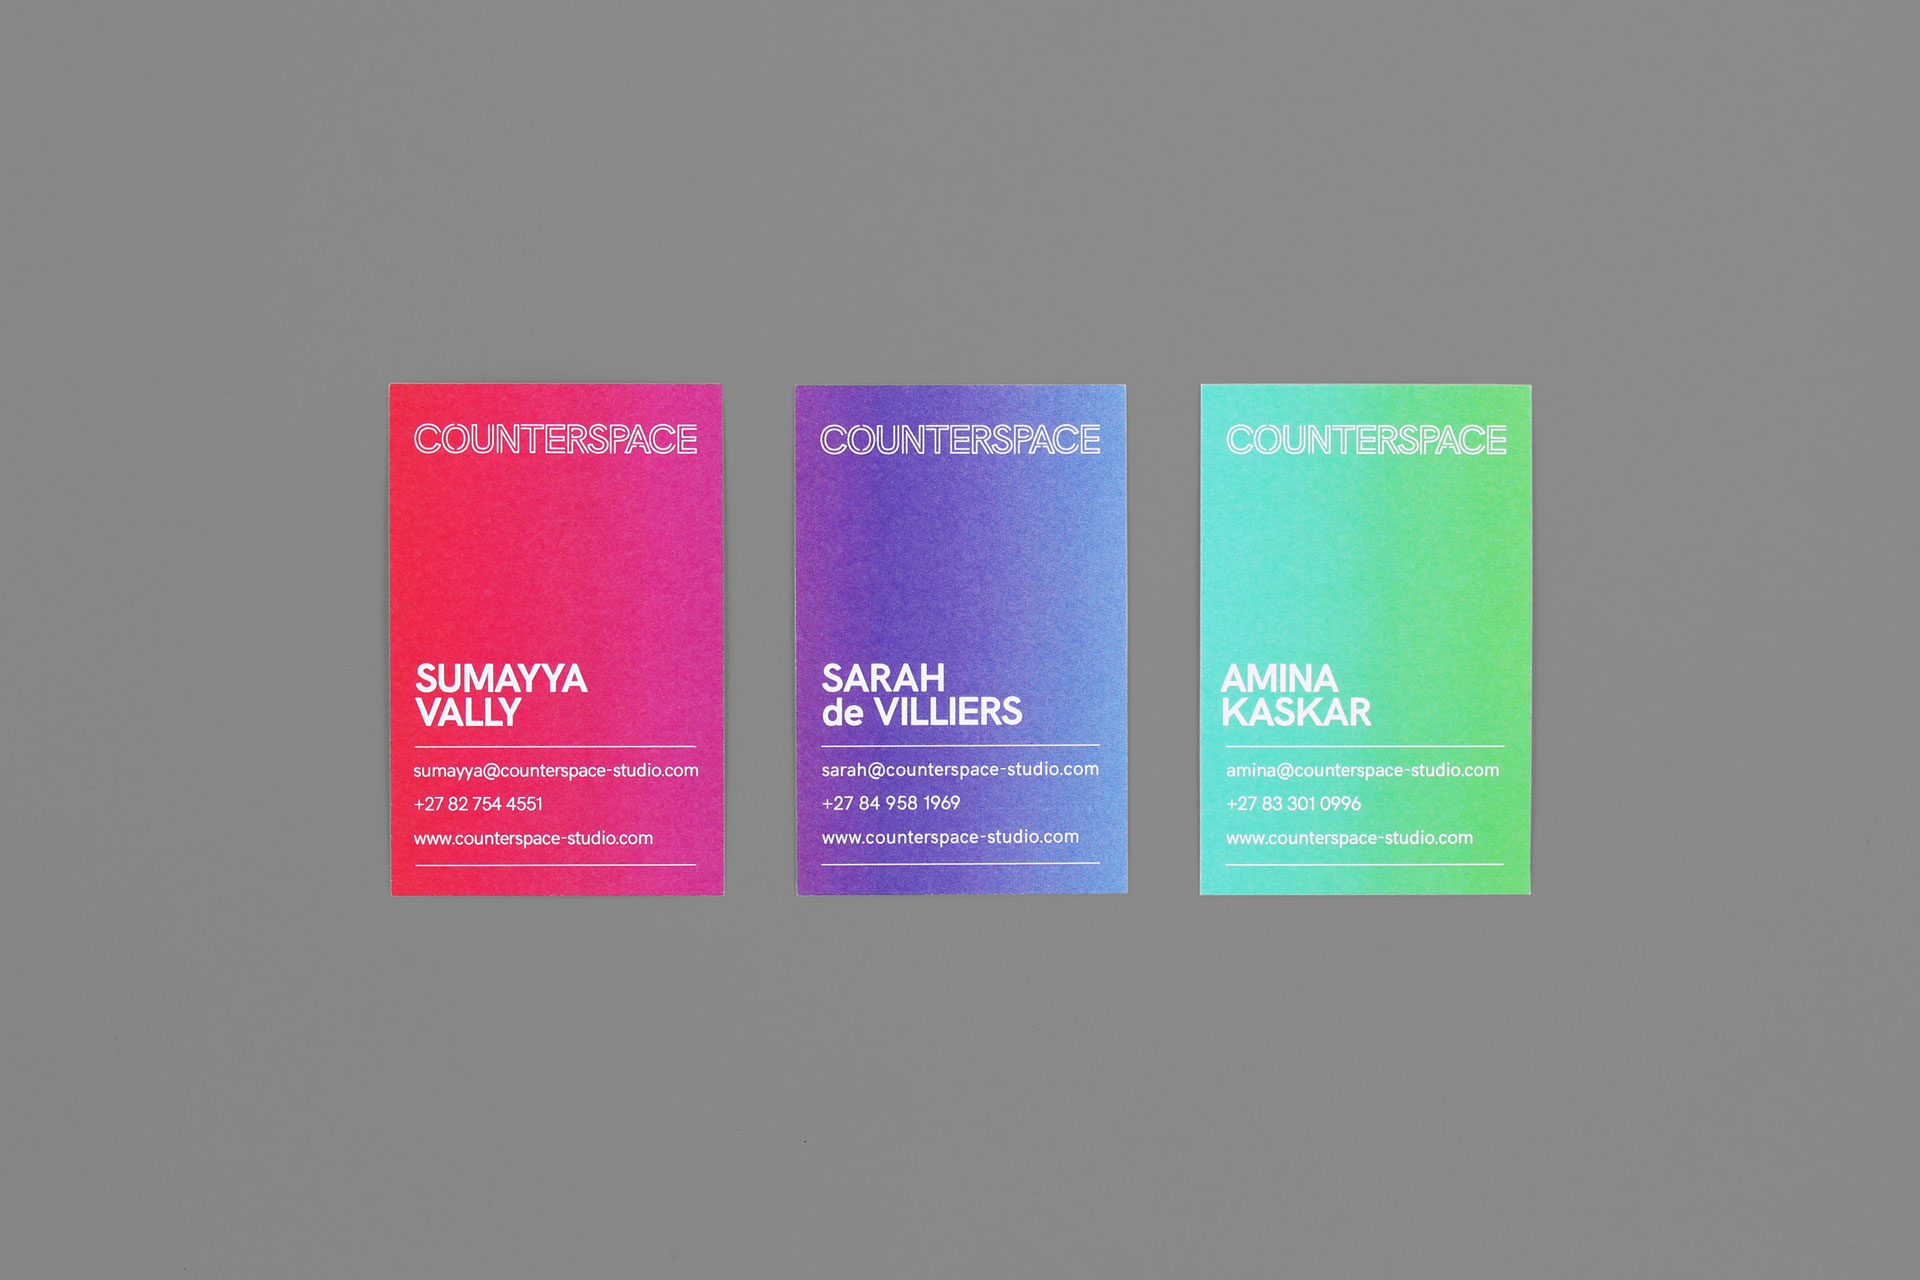 hh_counterspace_6